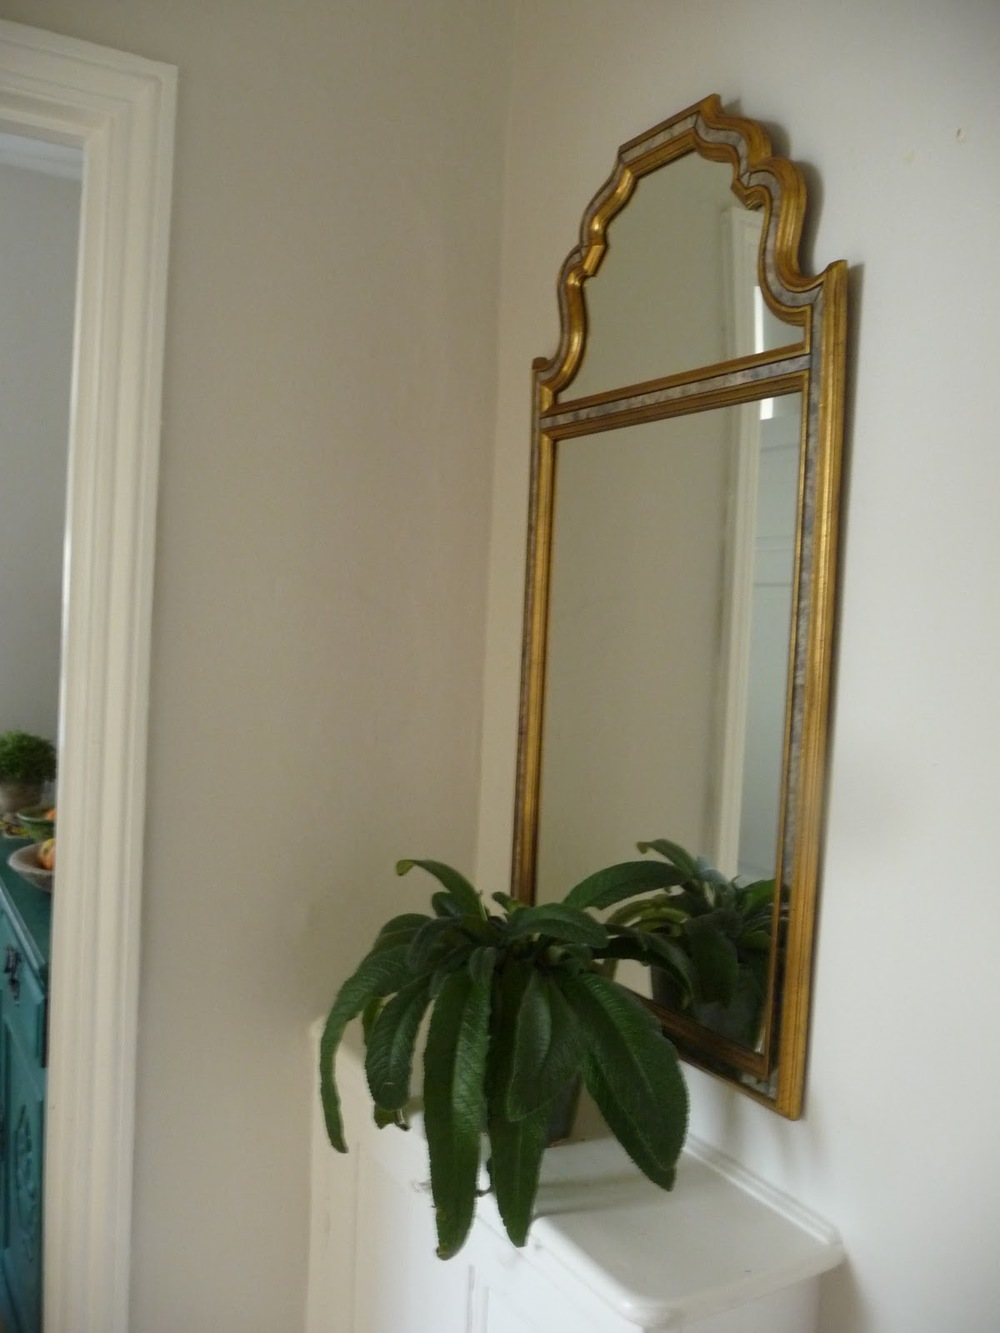 I found this mirror in a second hand book shop of all places. It is made in Belgium and is rather unusual. It is placed opposite the bathroom so reflects light from the bathroom window